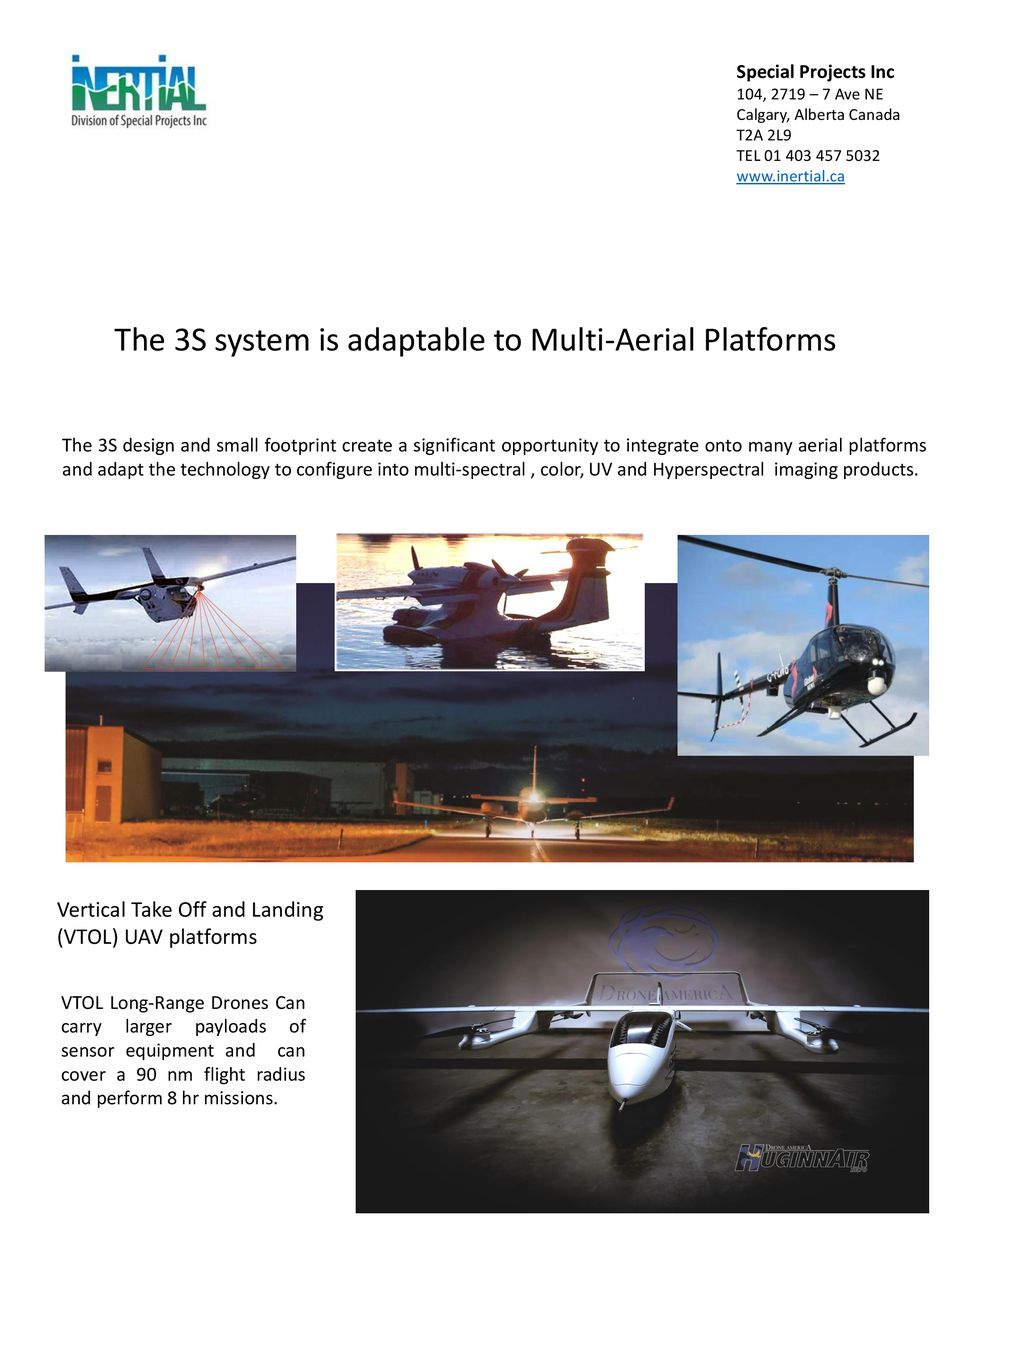 The 3S system is adaptable to Multi-Aerial Platforms - ppt